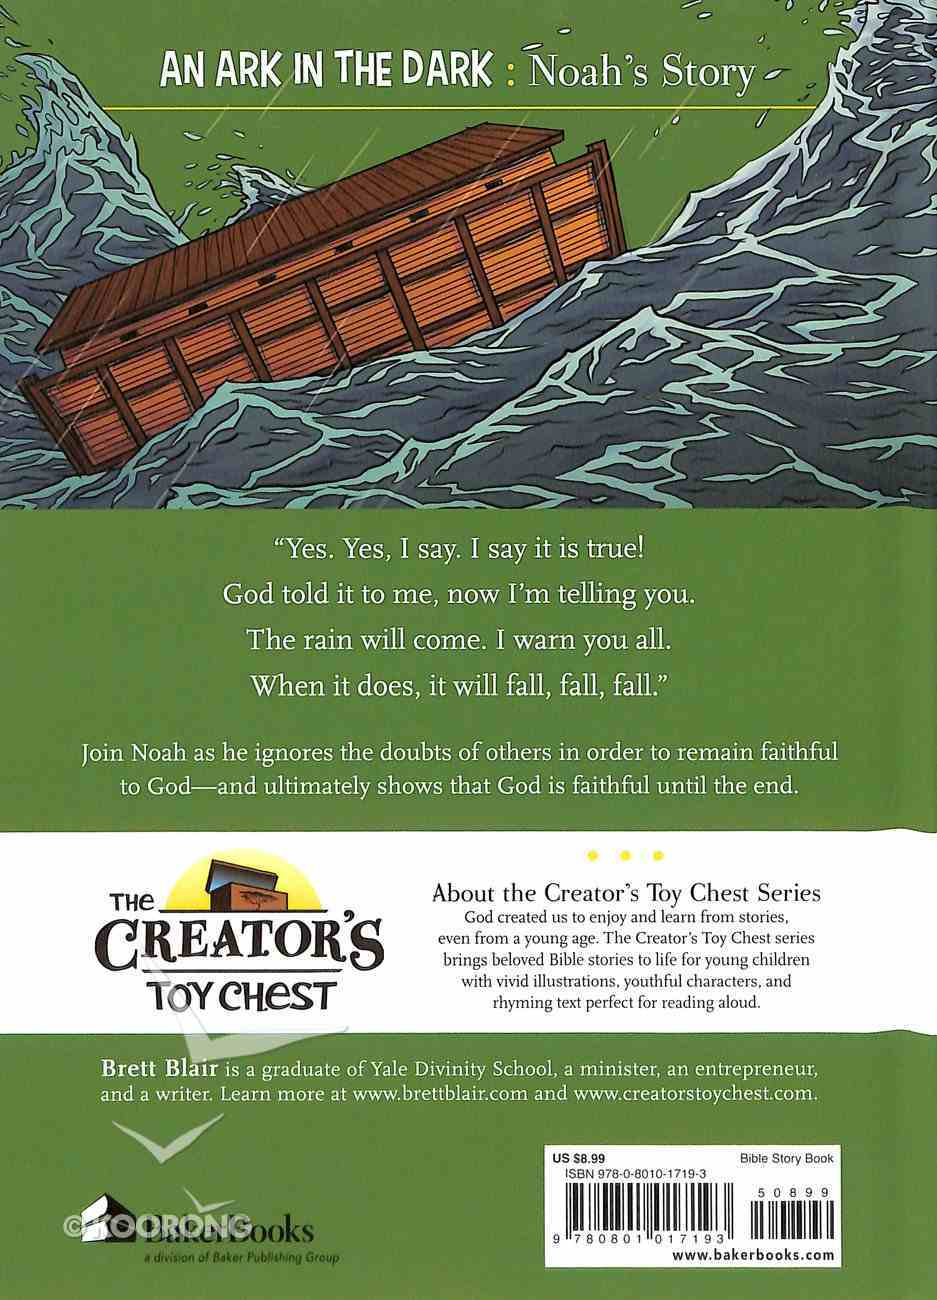 An Ark in the Dark - Noah's Story (Creator's Toy Chest Series) Hardback